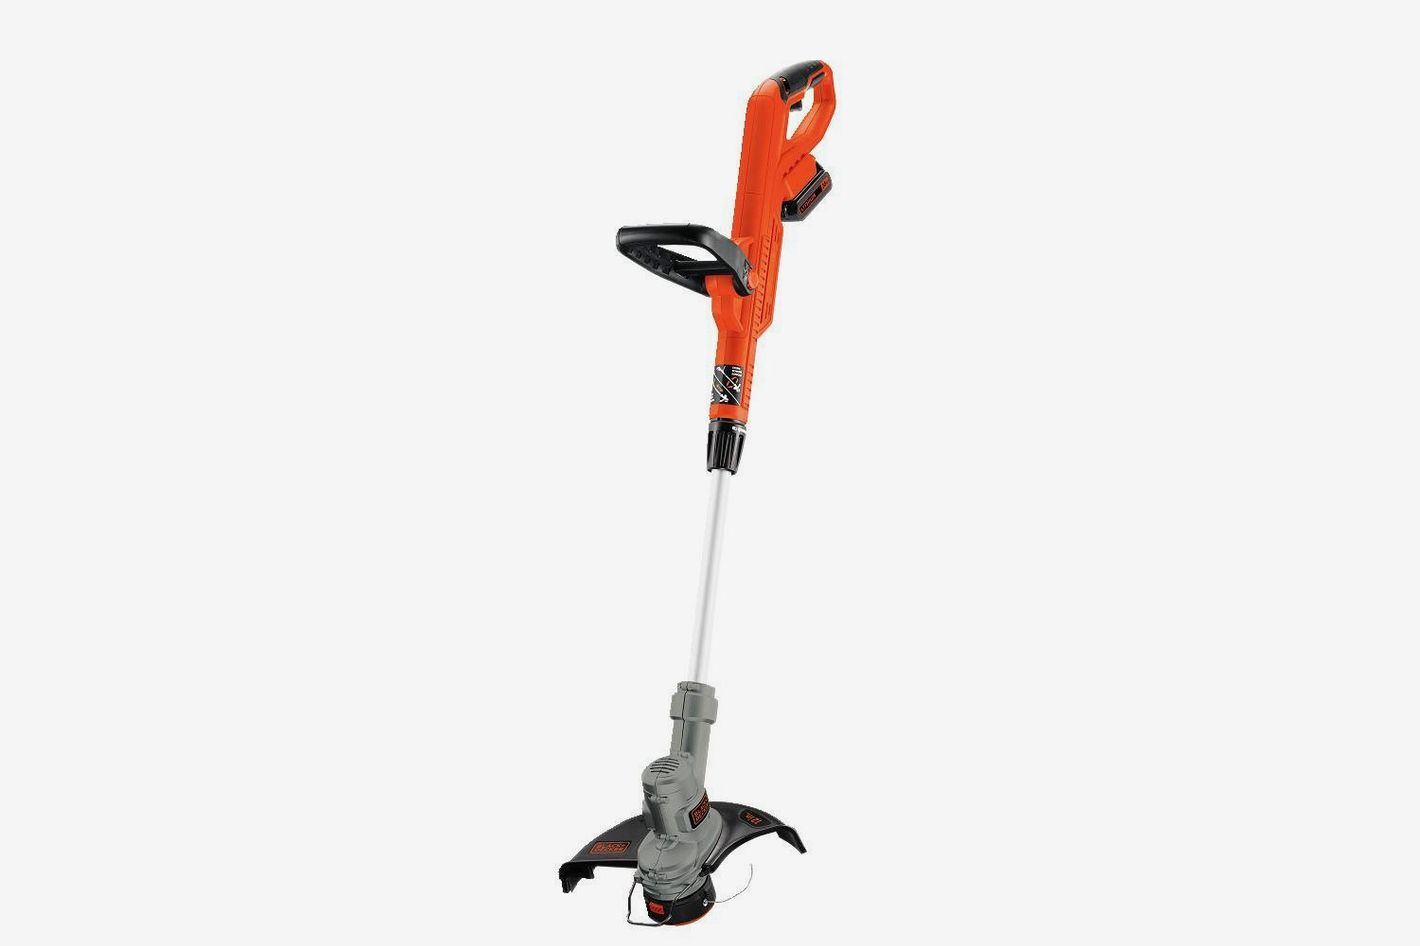 Black + Decker LST300 12-Inch Lithium Trimmer and Edger